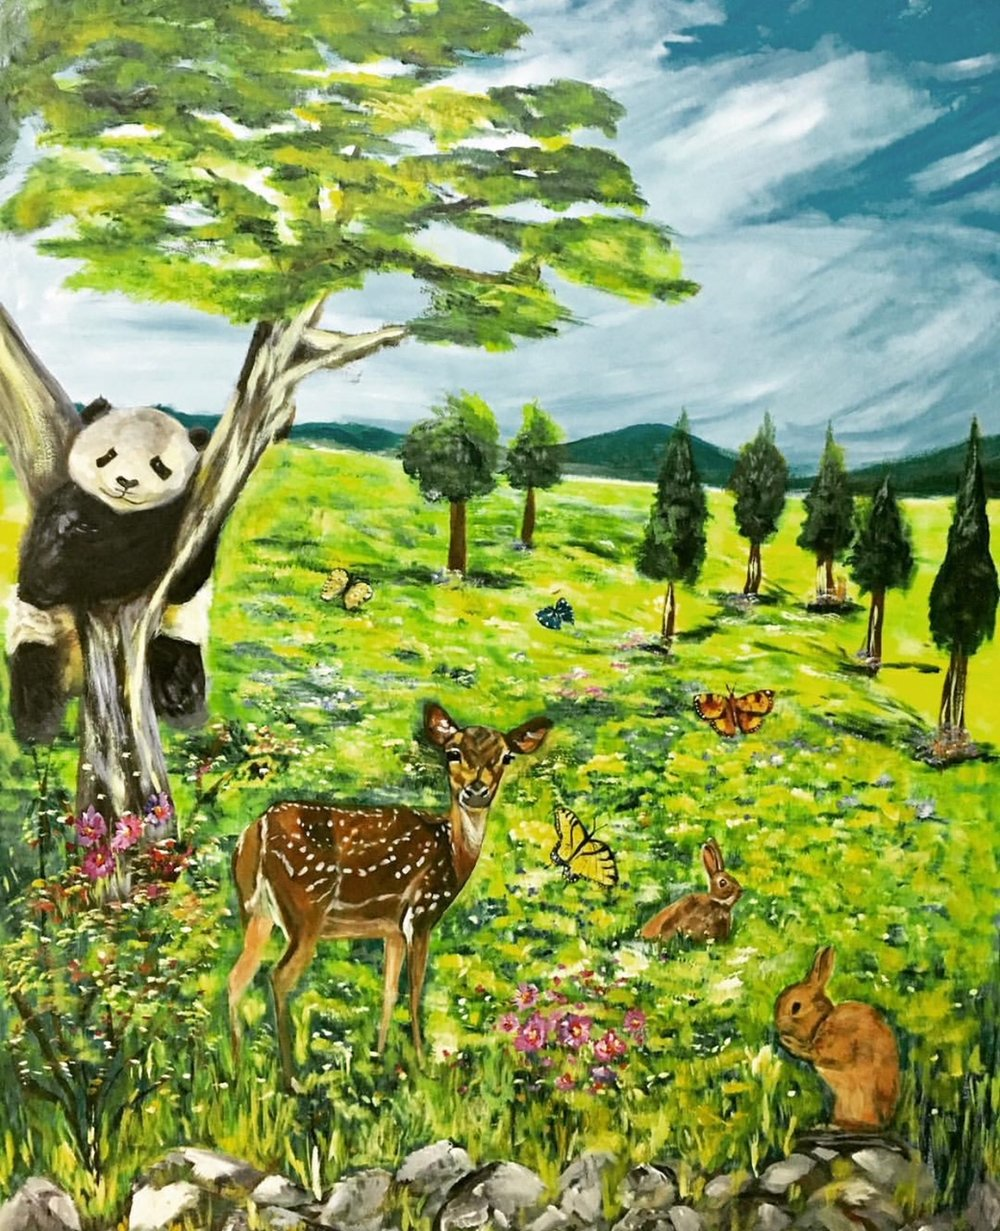 At the other opposite wall facing the first one, I added different animals of which I find the panda is quite cute and endearing and much liked by children.